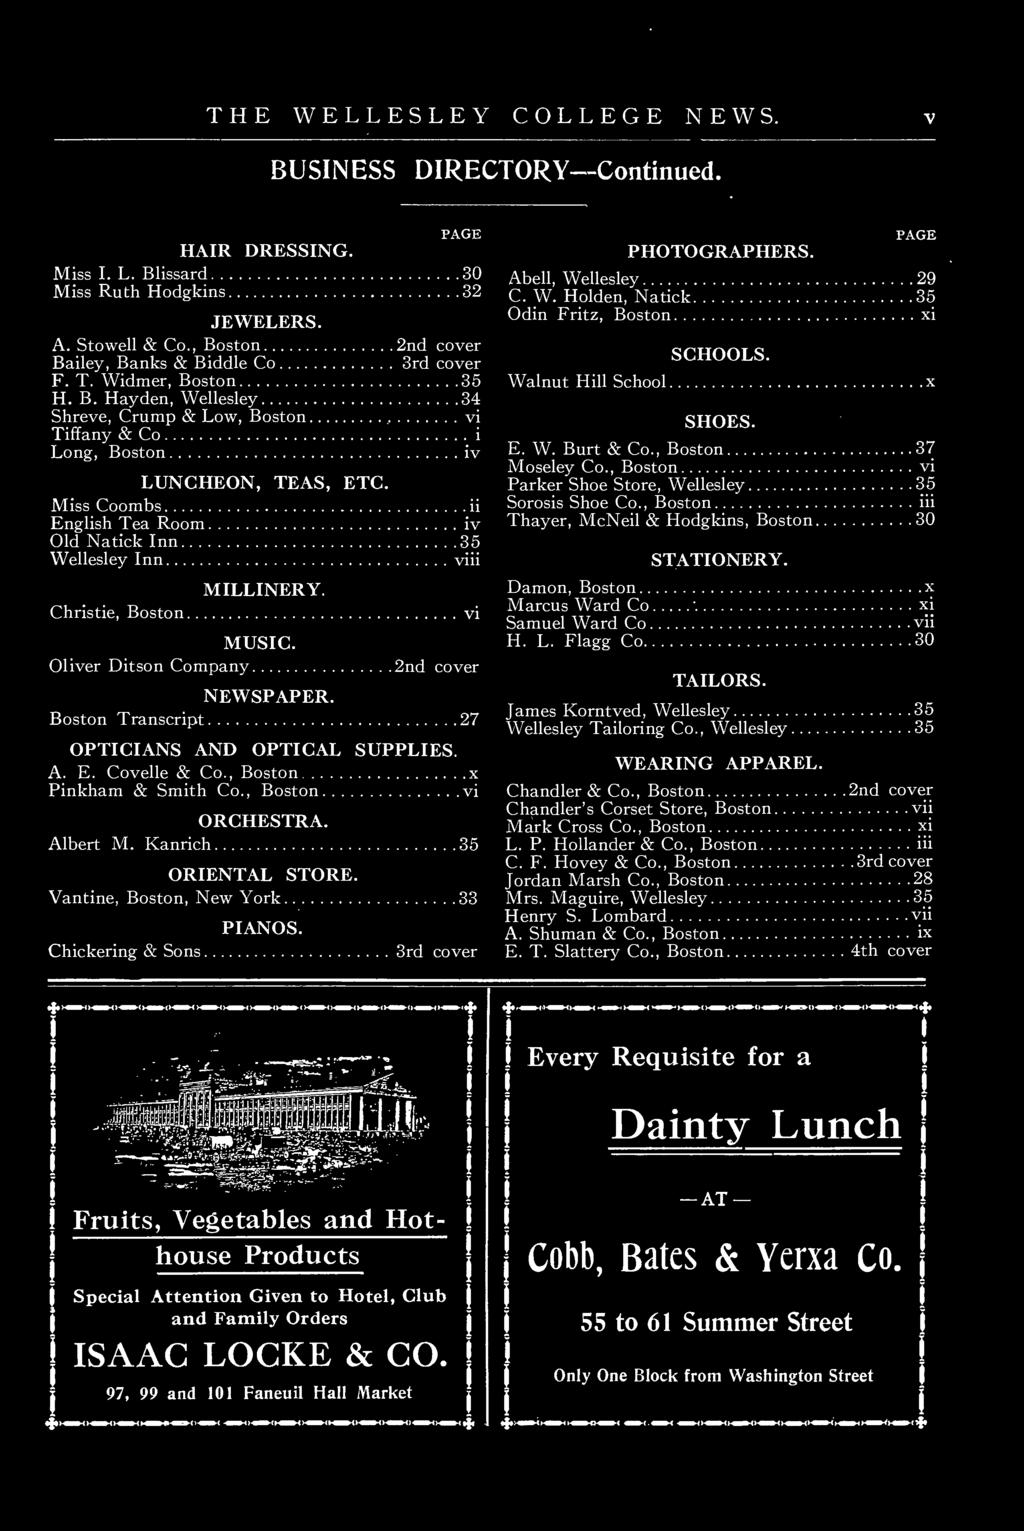 Mss Coombs Englsh Tea Room v Old Natck Inn 35 Wellesley Inn v Chrste, Boston MILLINERY. MUSIC. Olver Dtson Company v 2nd cover NEWSPAPER. Boston Transcrpt 27 OPTICIANS AND OPTICAL SUPPLIES. A. E. Covelle & Co.